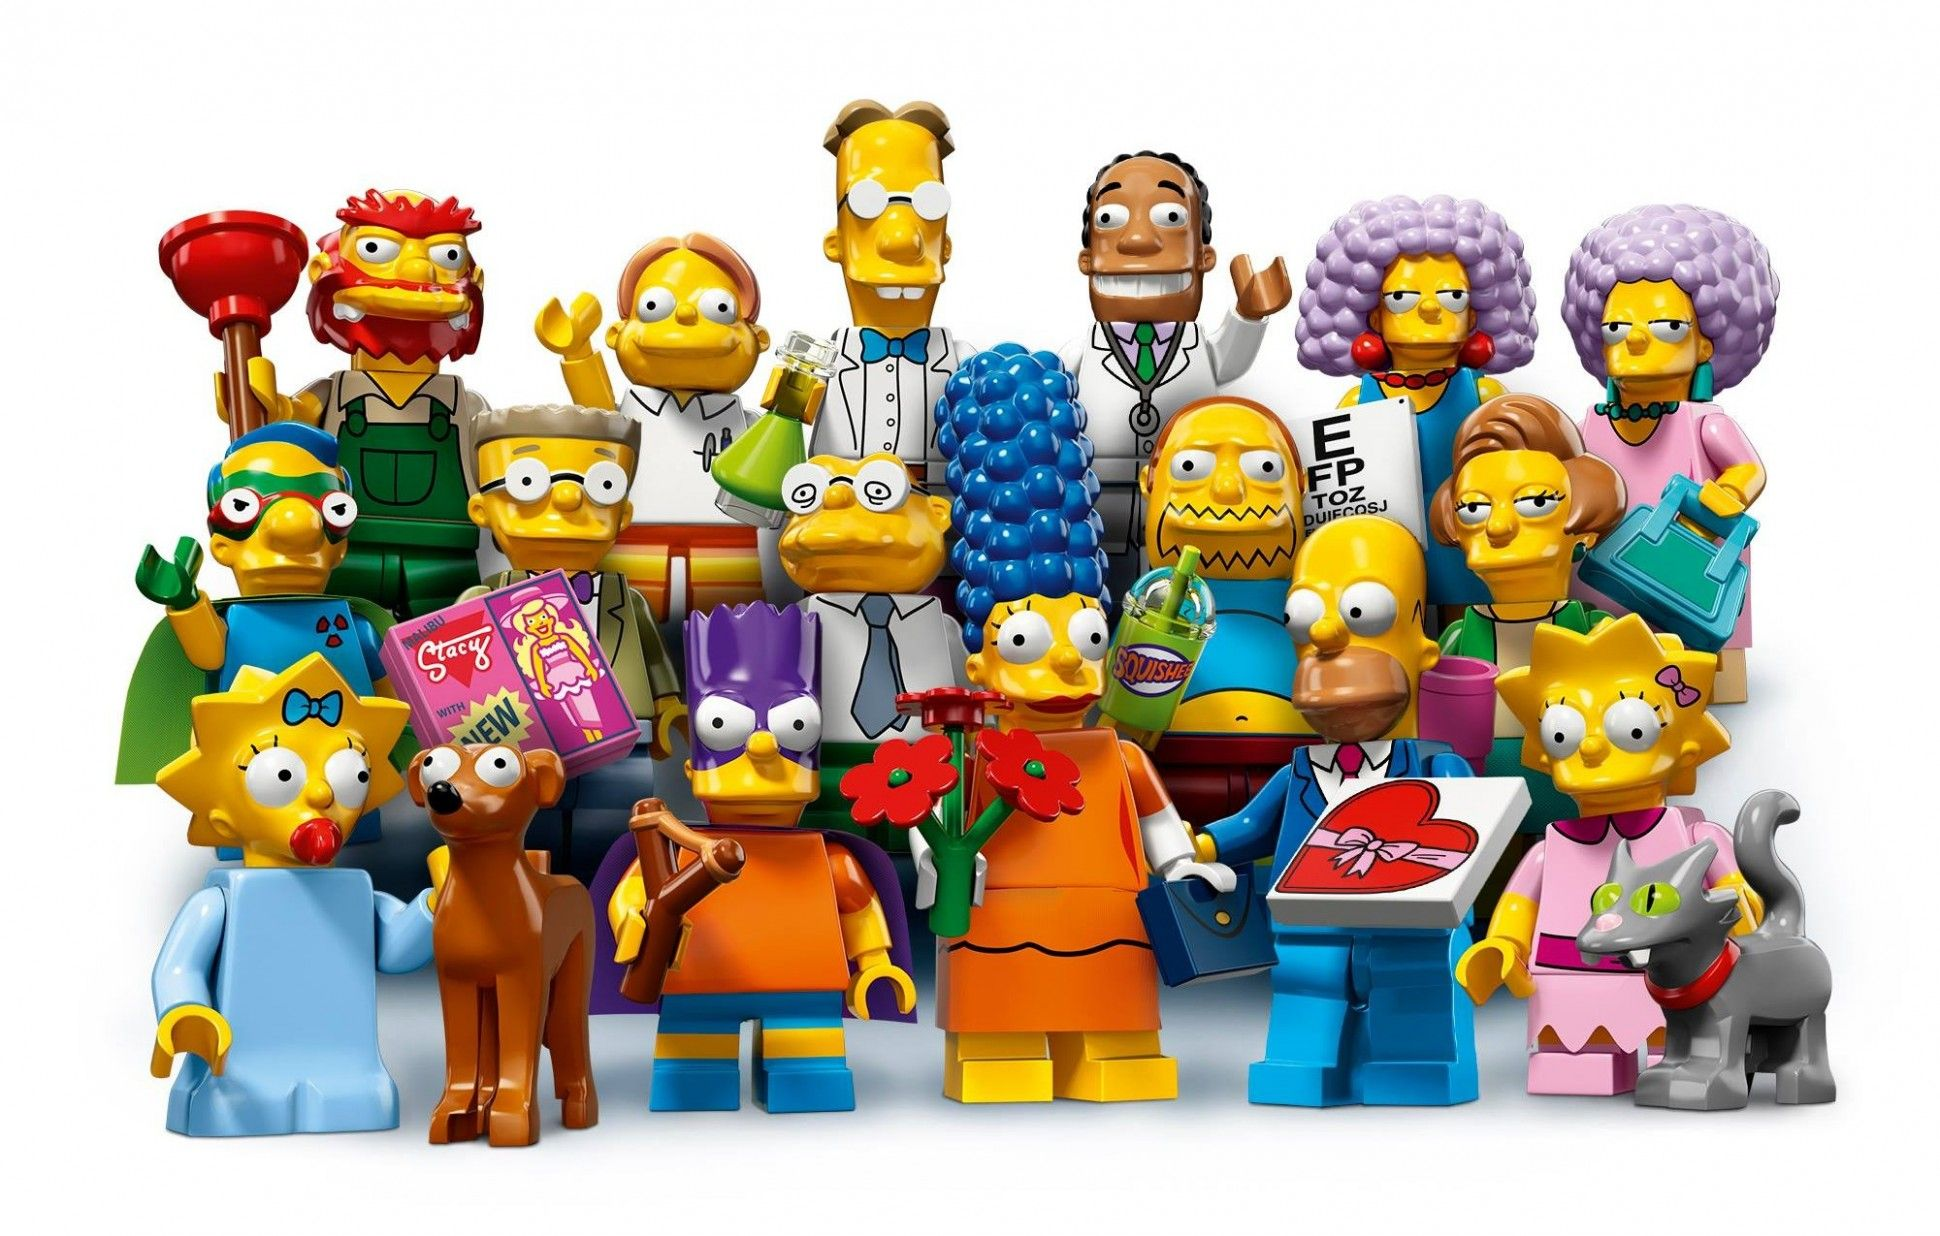 Series 2 The Simpsons Lego Minifigures Extend Comic Book Theme Lego Simpsons The Simpsons Lego Figures